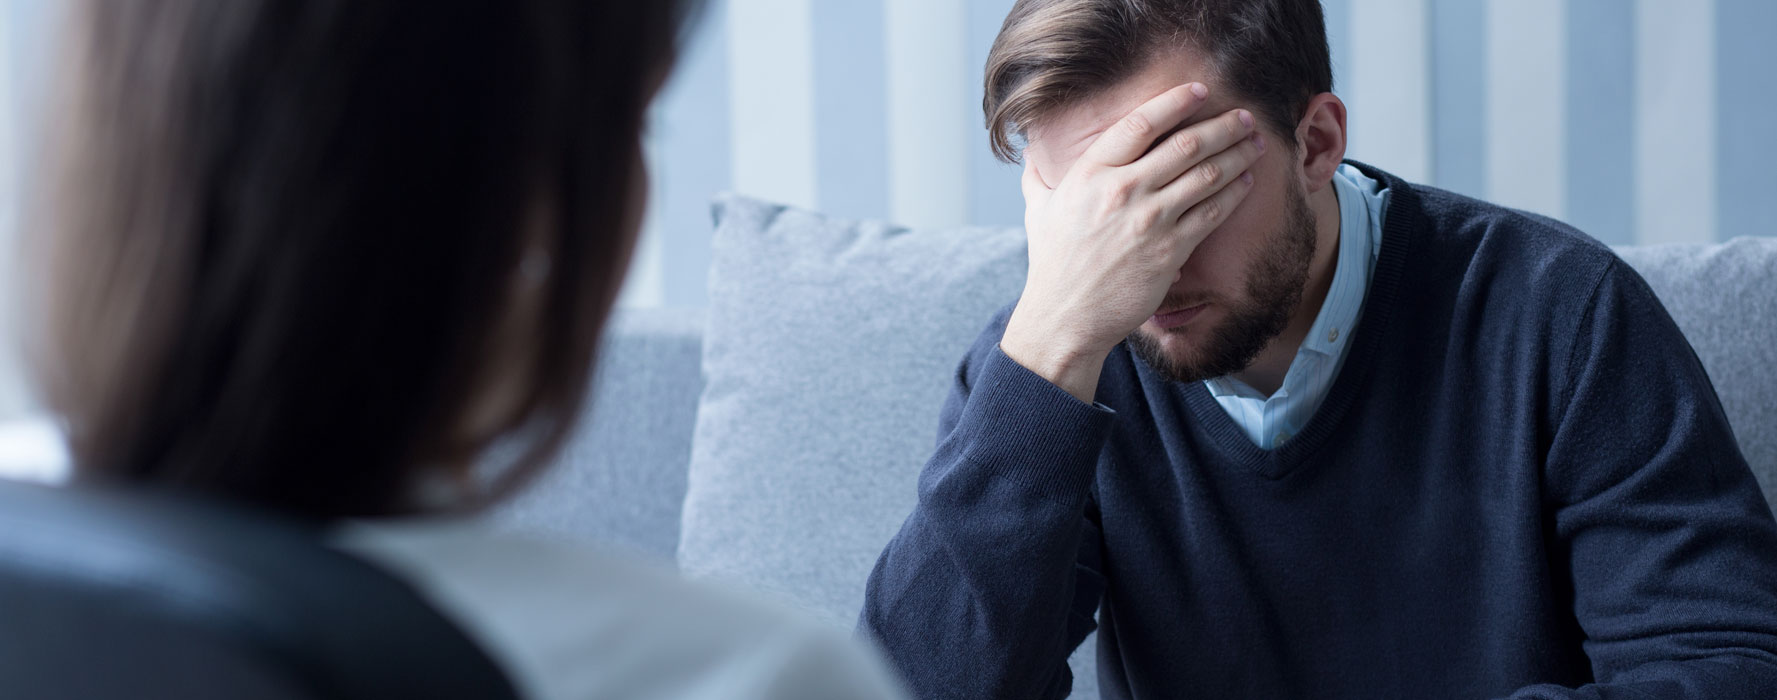 hypnotherapy anxiety and depression gold coast